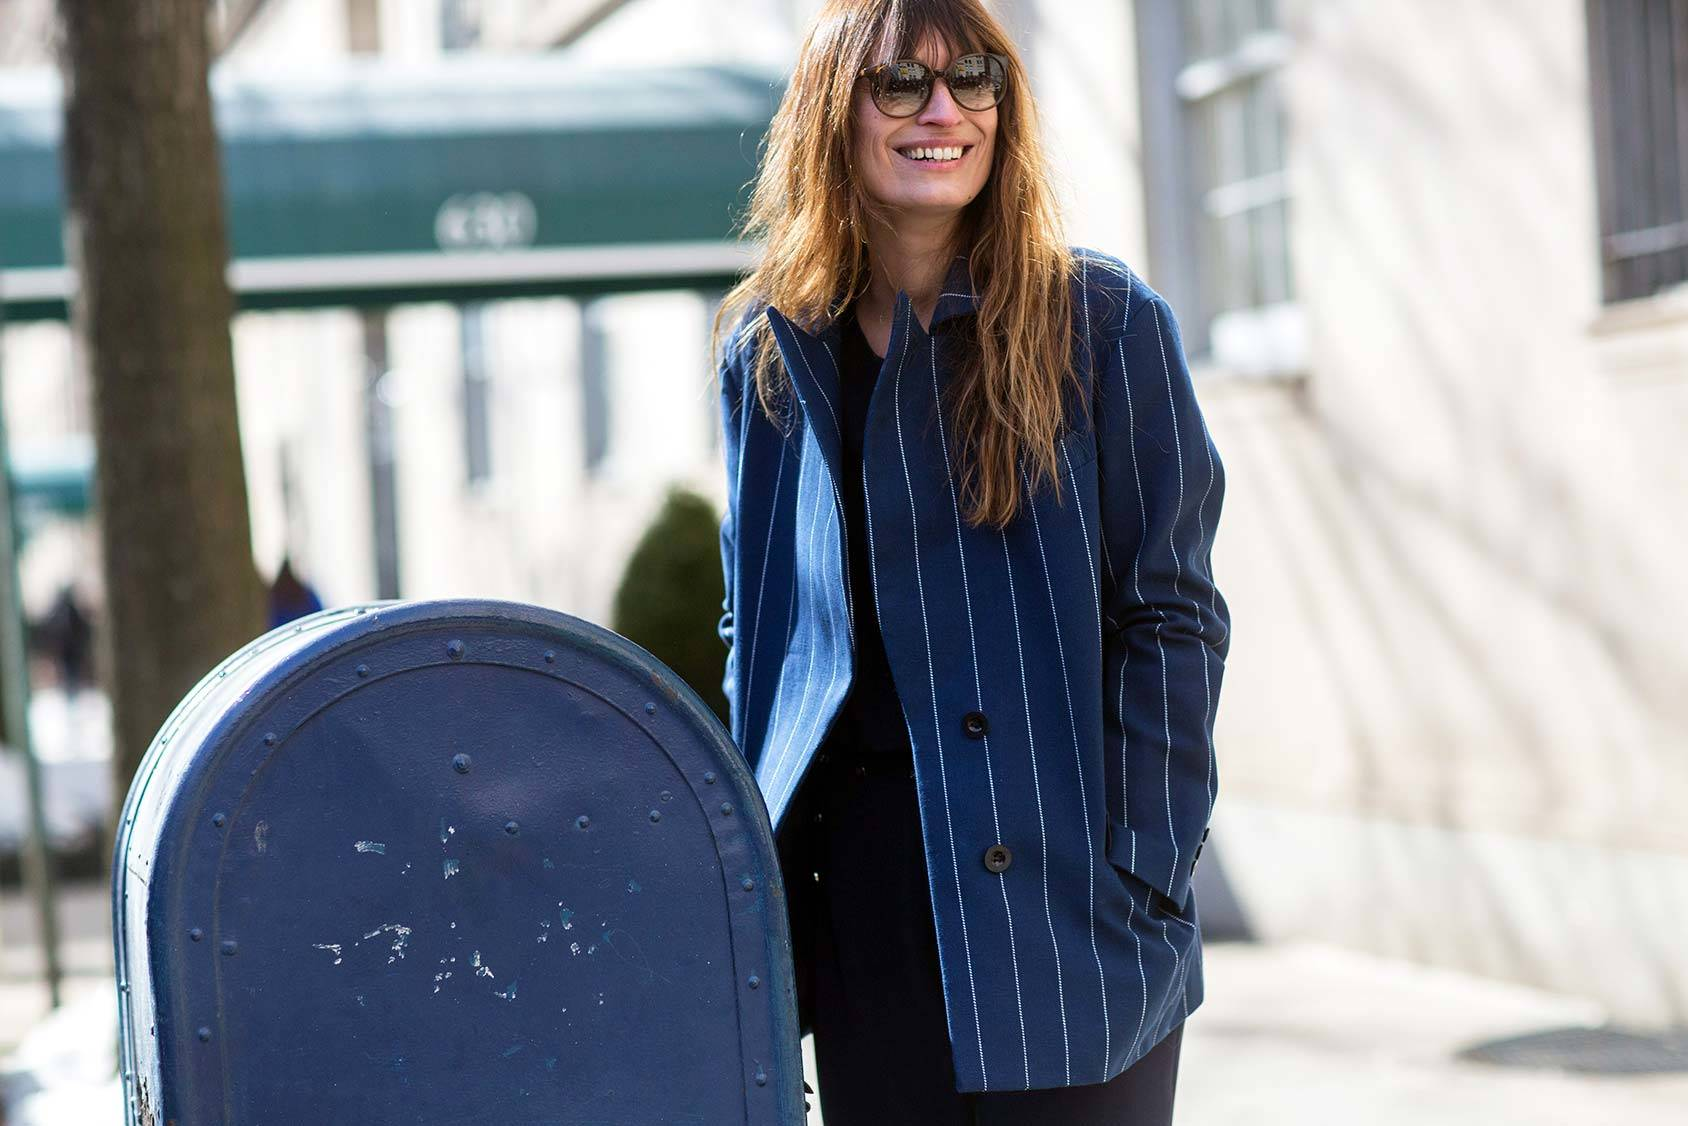 International style icon Caroline de Maigret will dj at the H&M Studio Fashion show in Paris on Wednesday, All Over Press.